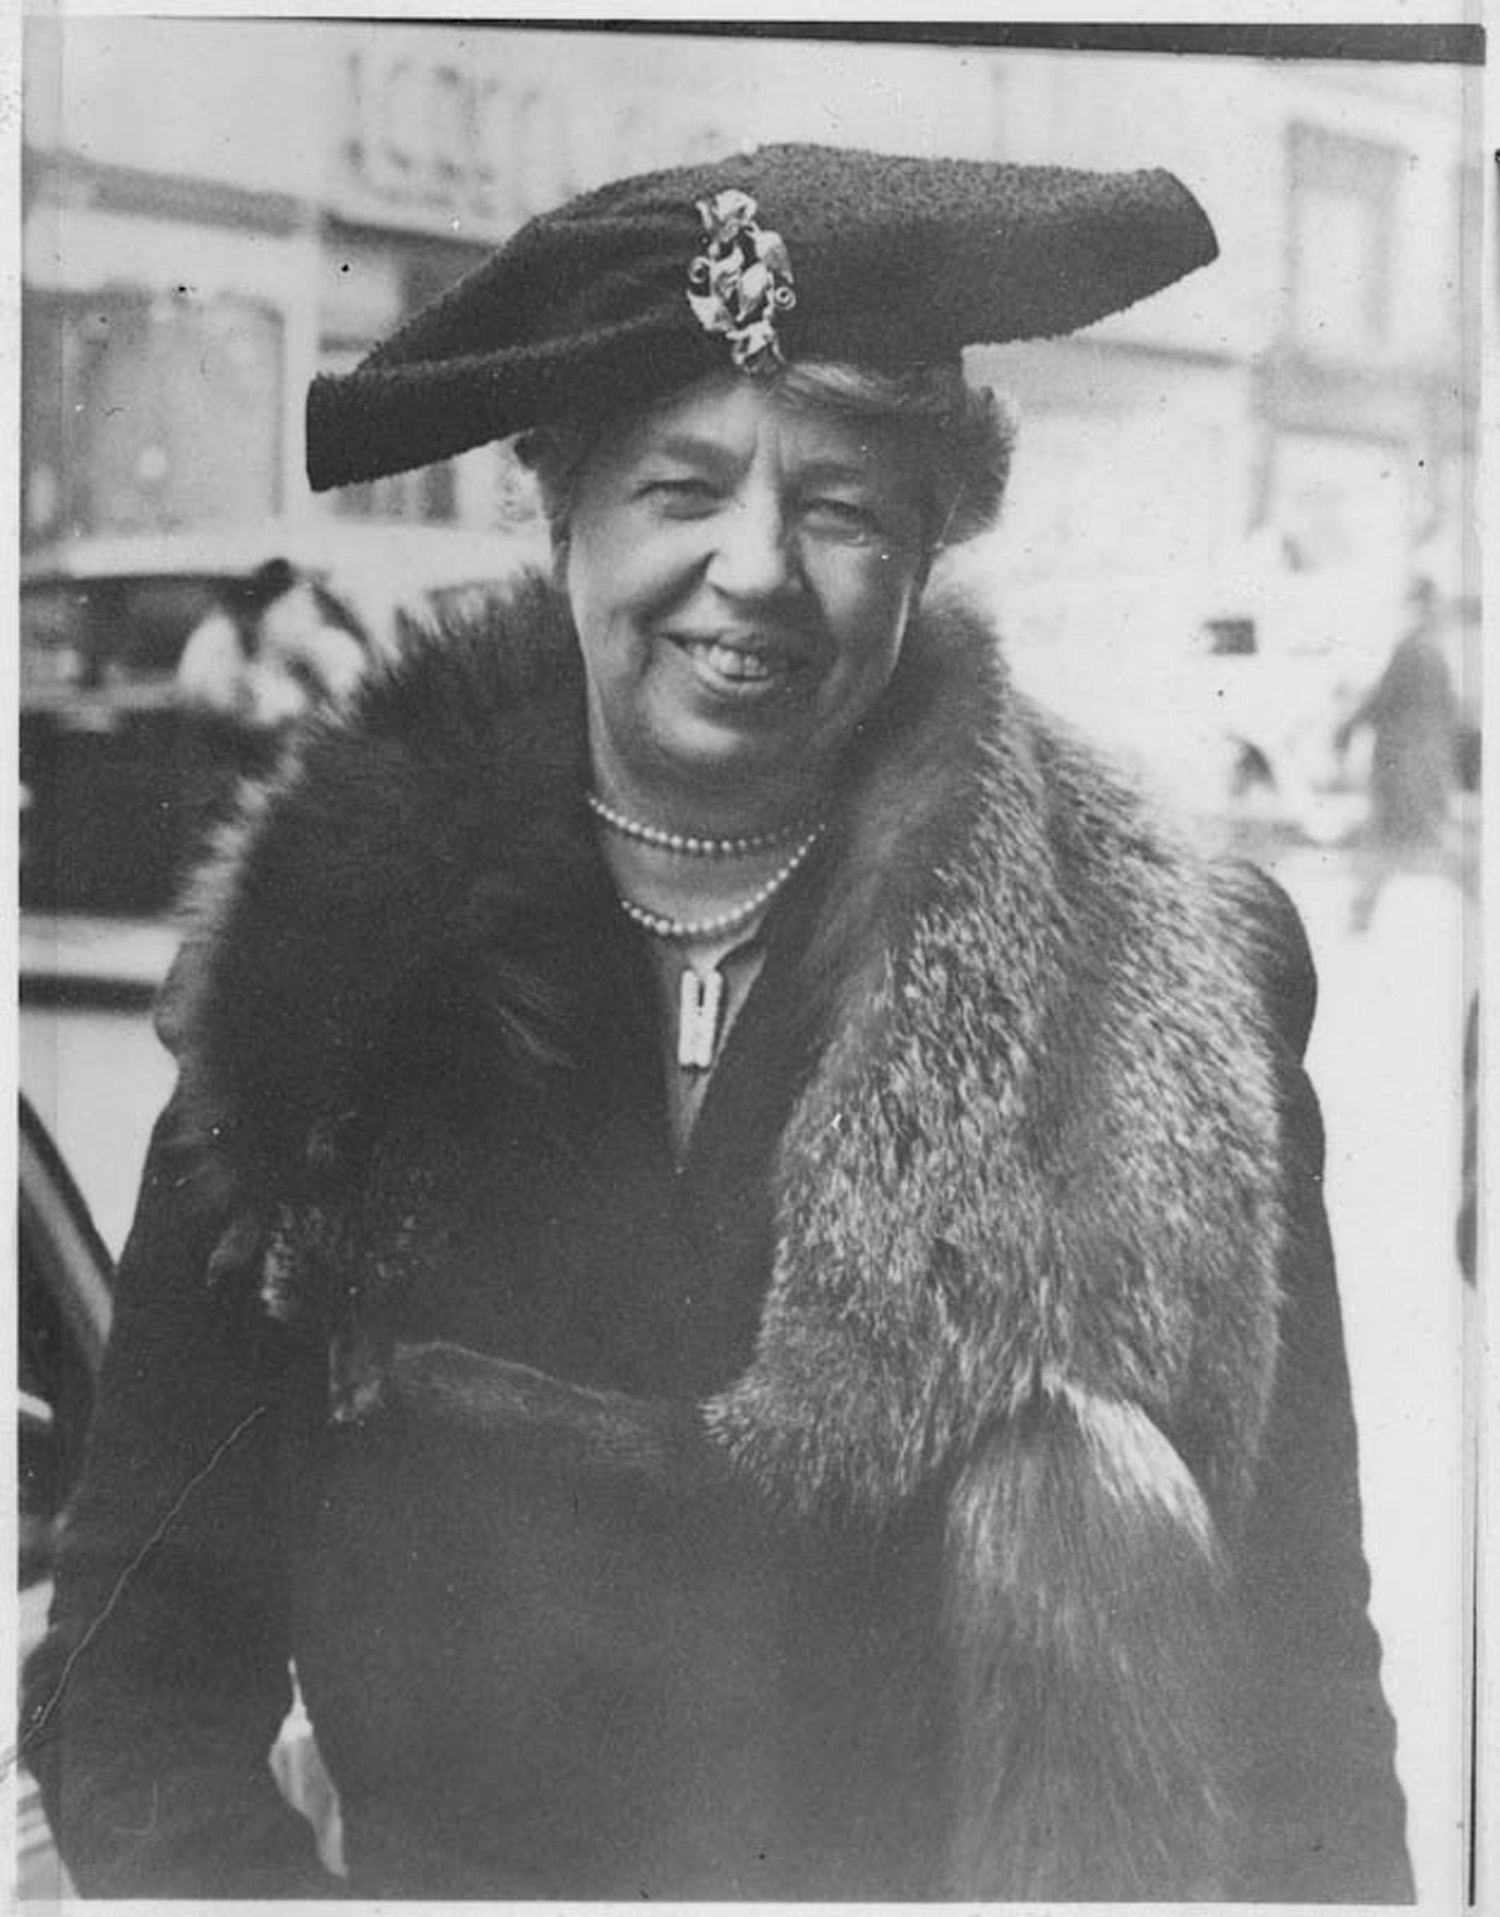 Eleanor Roosevelt,Fifth Avenue, Dec. 20, 1940,Franklin D. Roosevelt Presidential Library and Museum